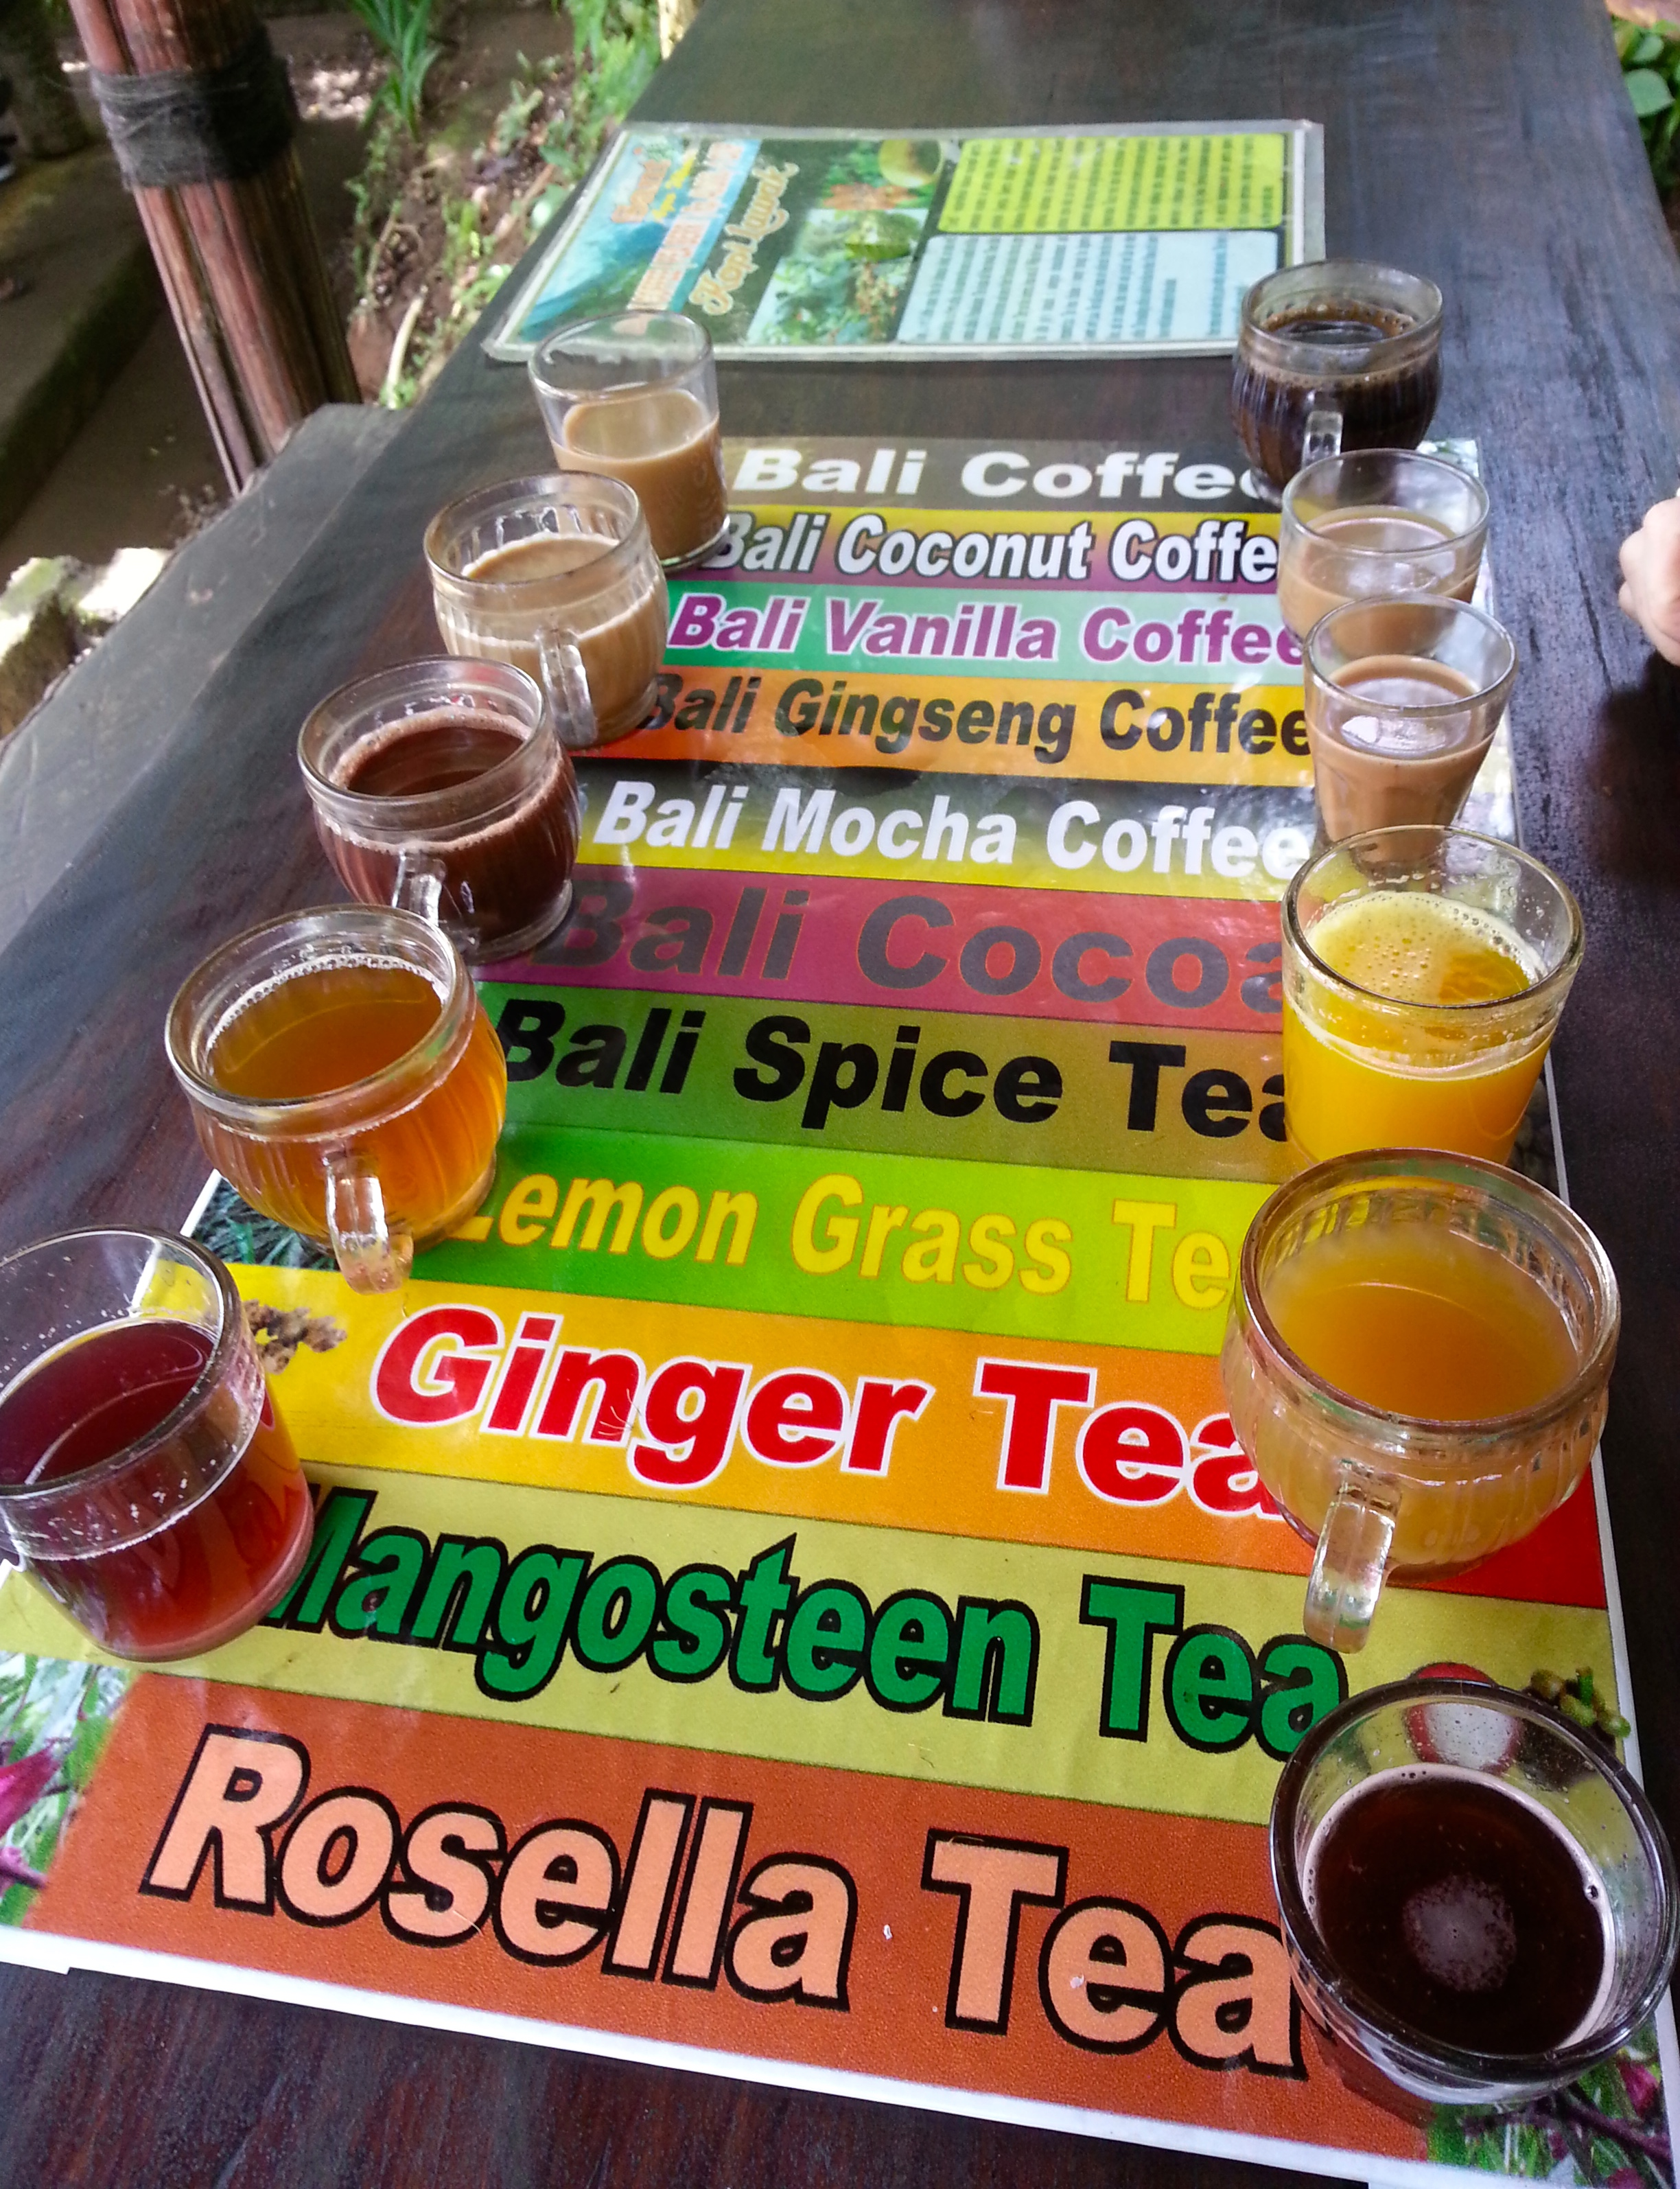 The many delicious teas and coffee we got to sample